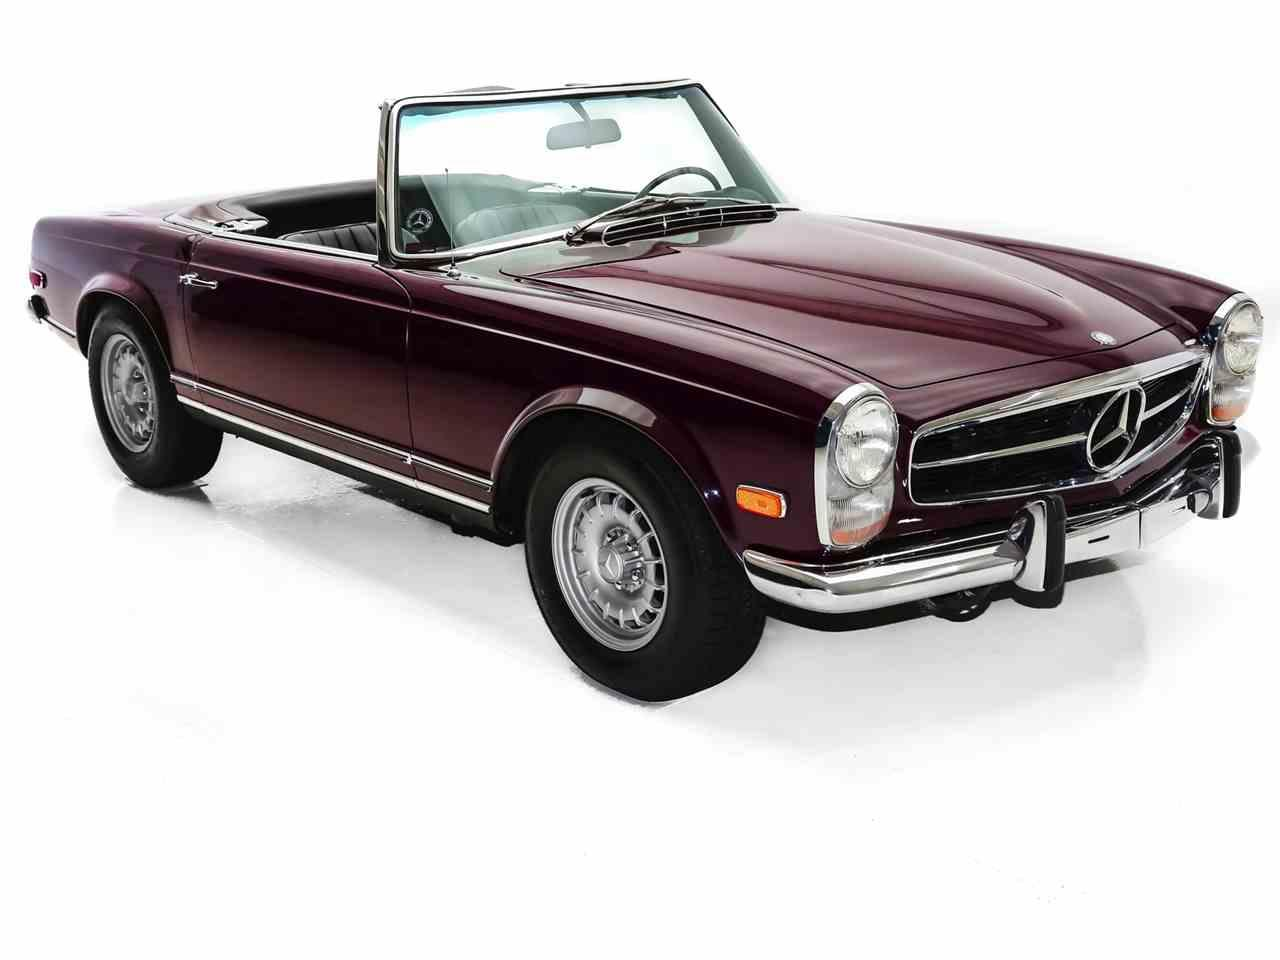 Large Picture of '69 Mercedes-Benz 280SL located in South Carolina Offered by a Private Seller - MHE9